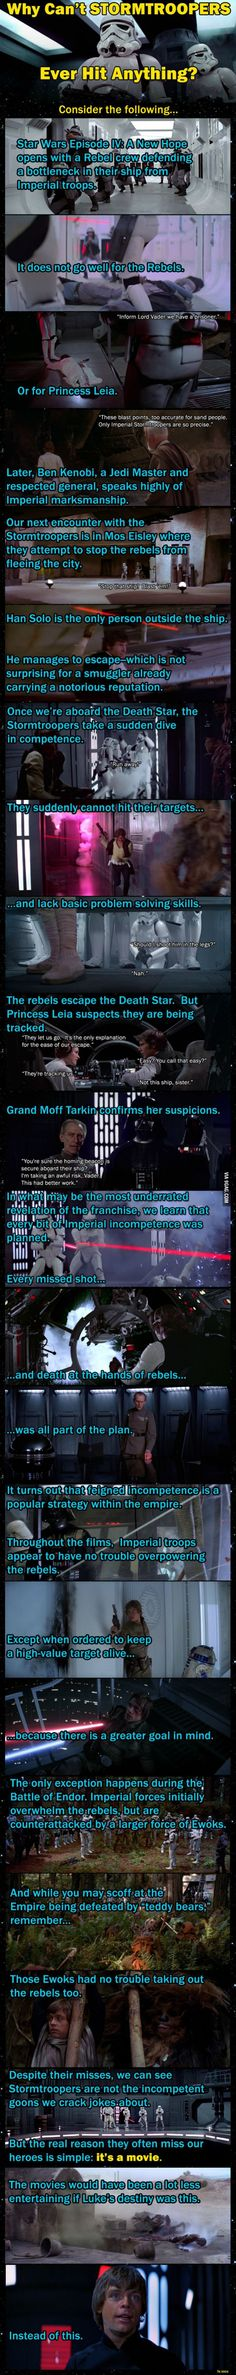 Great theory! Ever wondered why the Stormtroopers in the original Star Wars trilogy always missed hitting important characters? Sure, we've seen Princess Leia got hit once, but for the most part, they have terrible aim. This image explains the real reason why:     Via 9gag